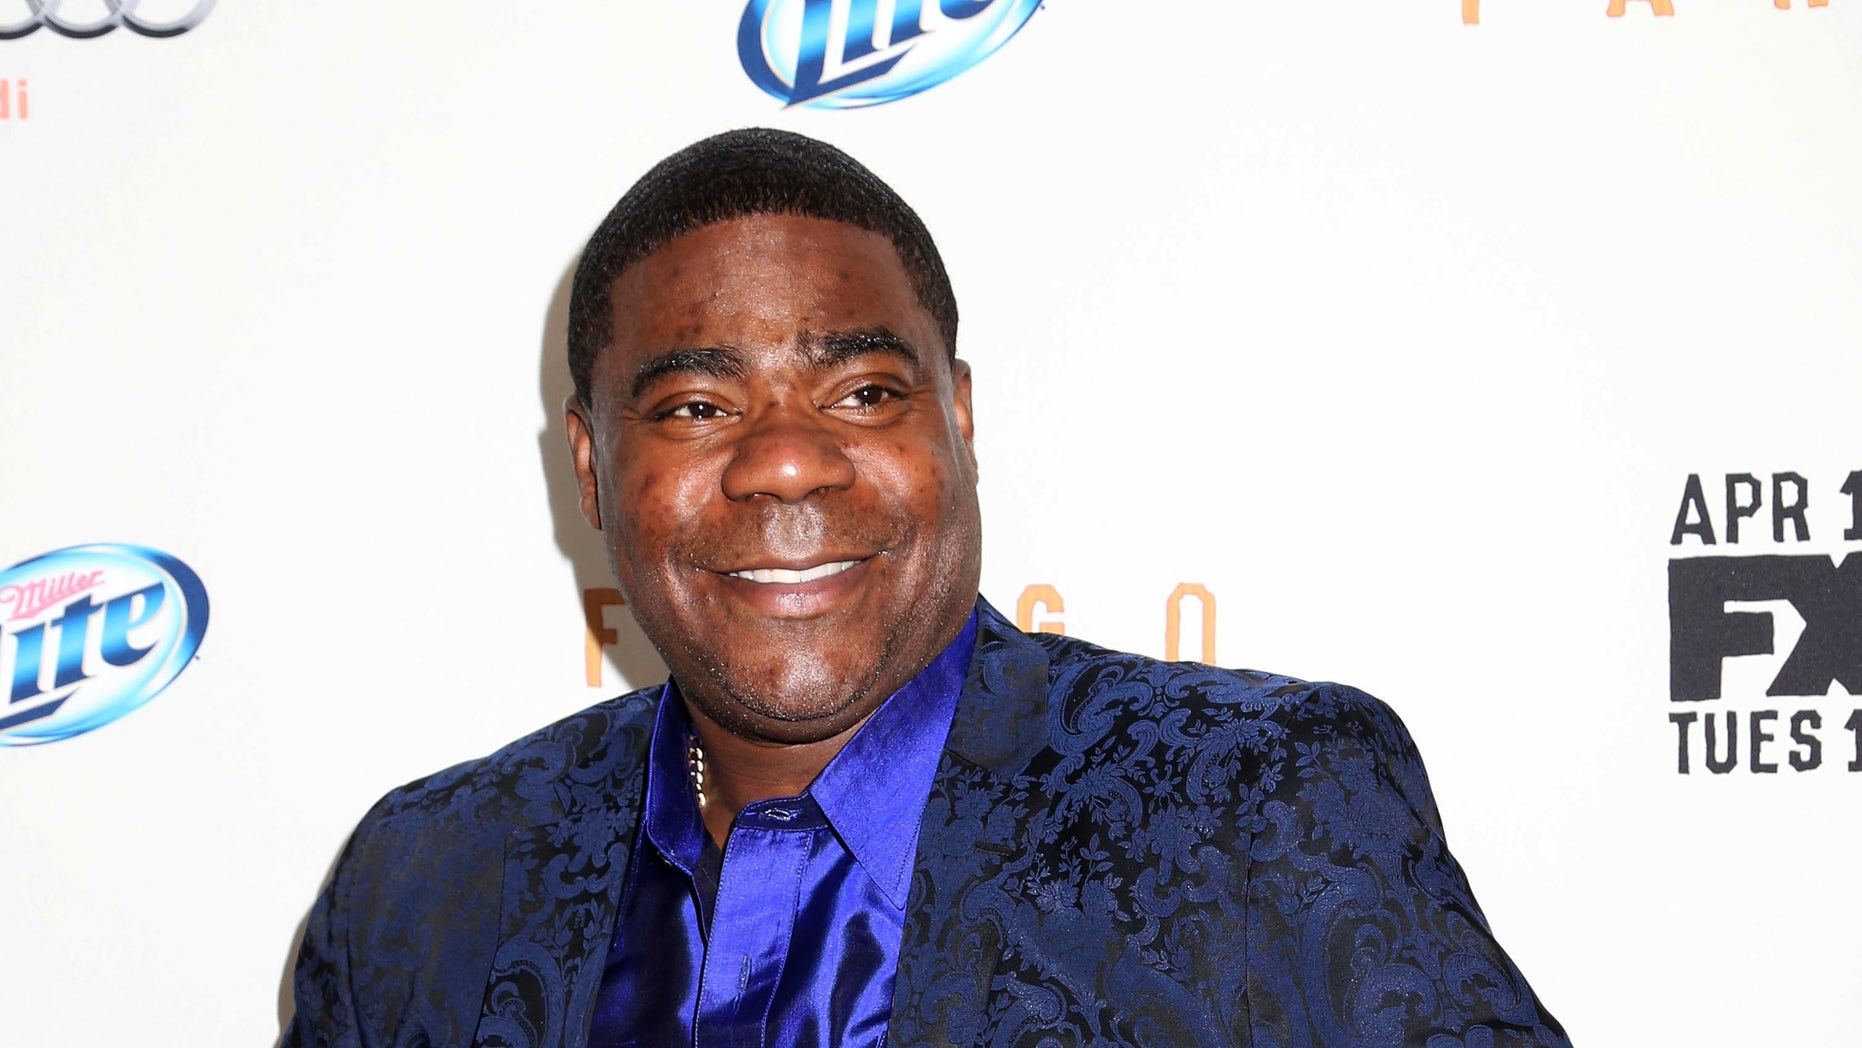 """April 9, 2014. Tracy Morgan attends the FX Networks Upfront premiere screening of """"Fargo"""" at the SVA Theater in New York."""